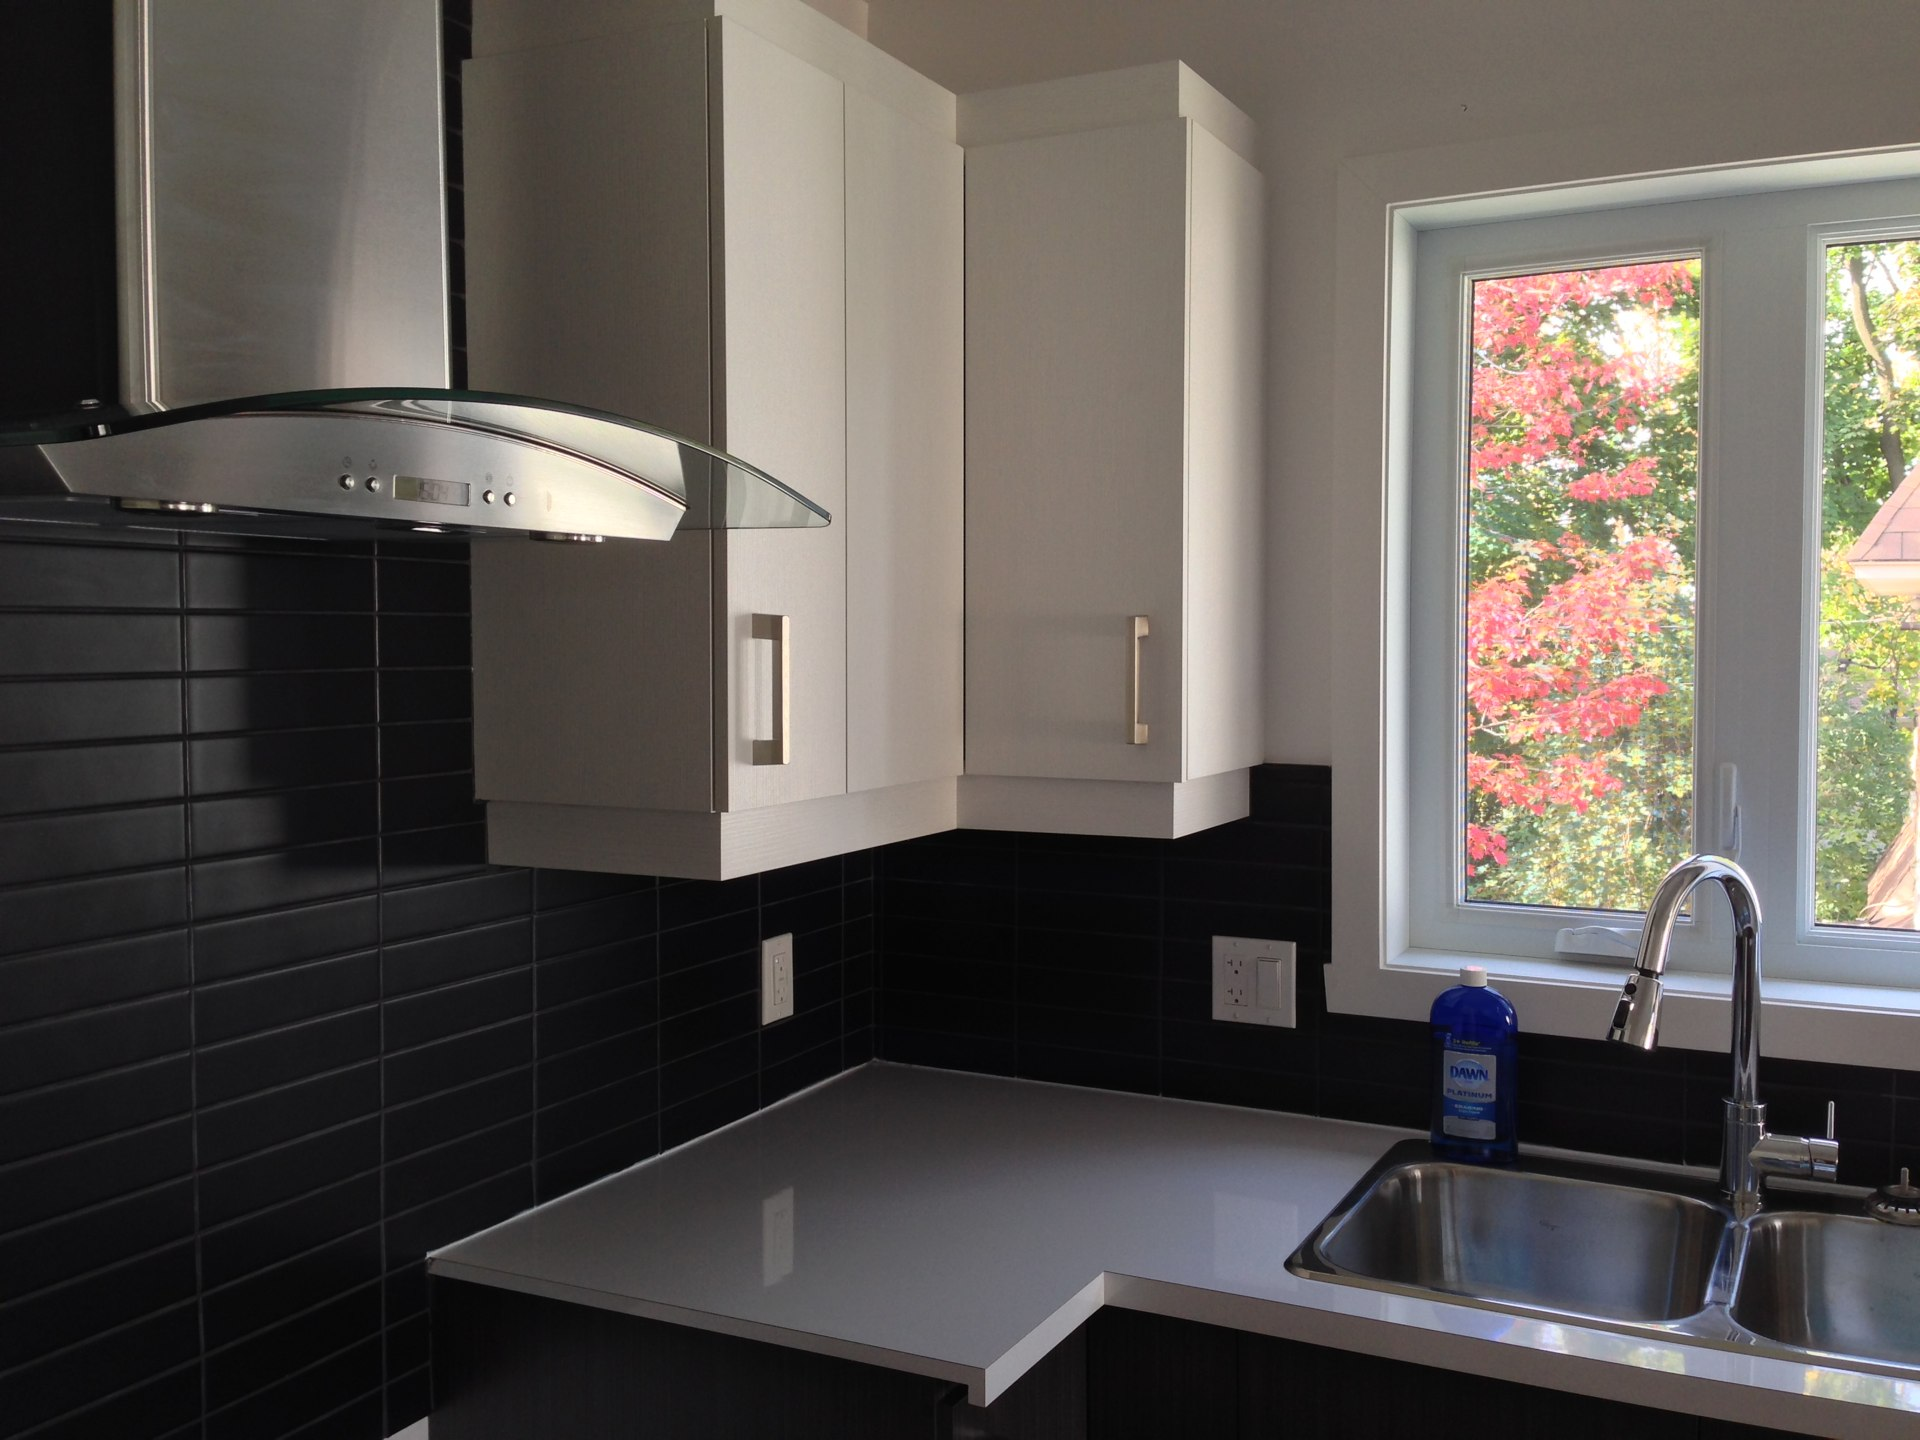 Photos additionnelles condo vendre 243 000 tx incl for Article de cuisine laval